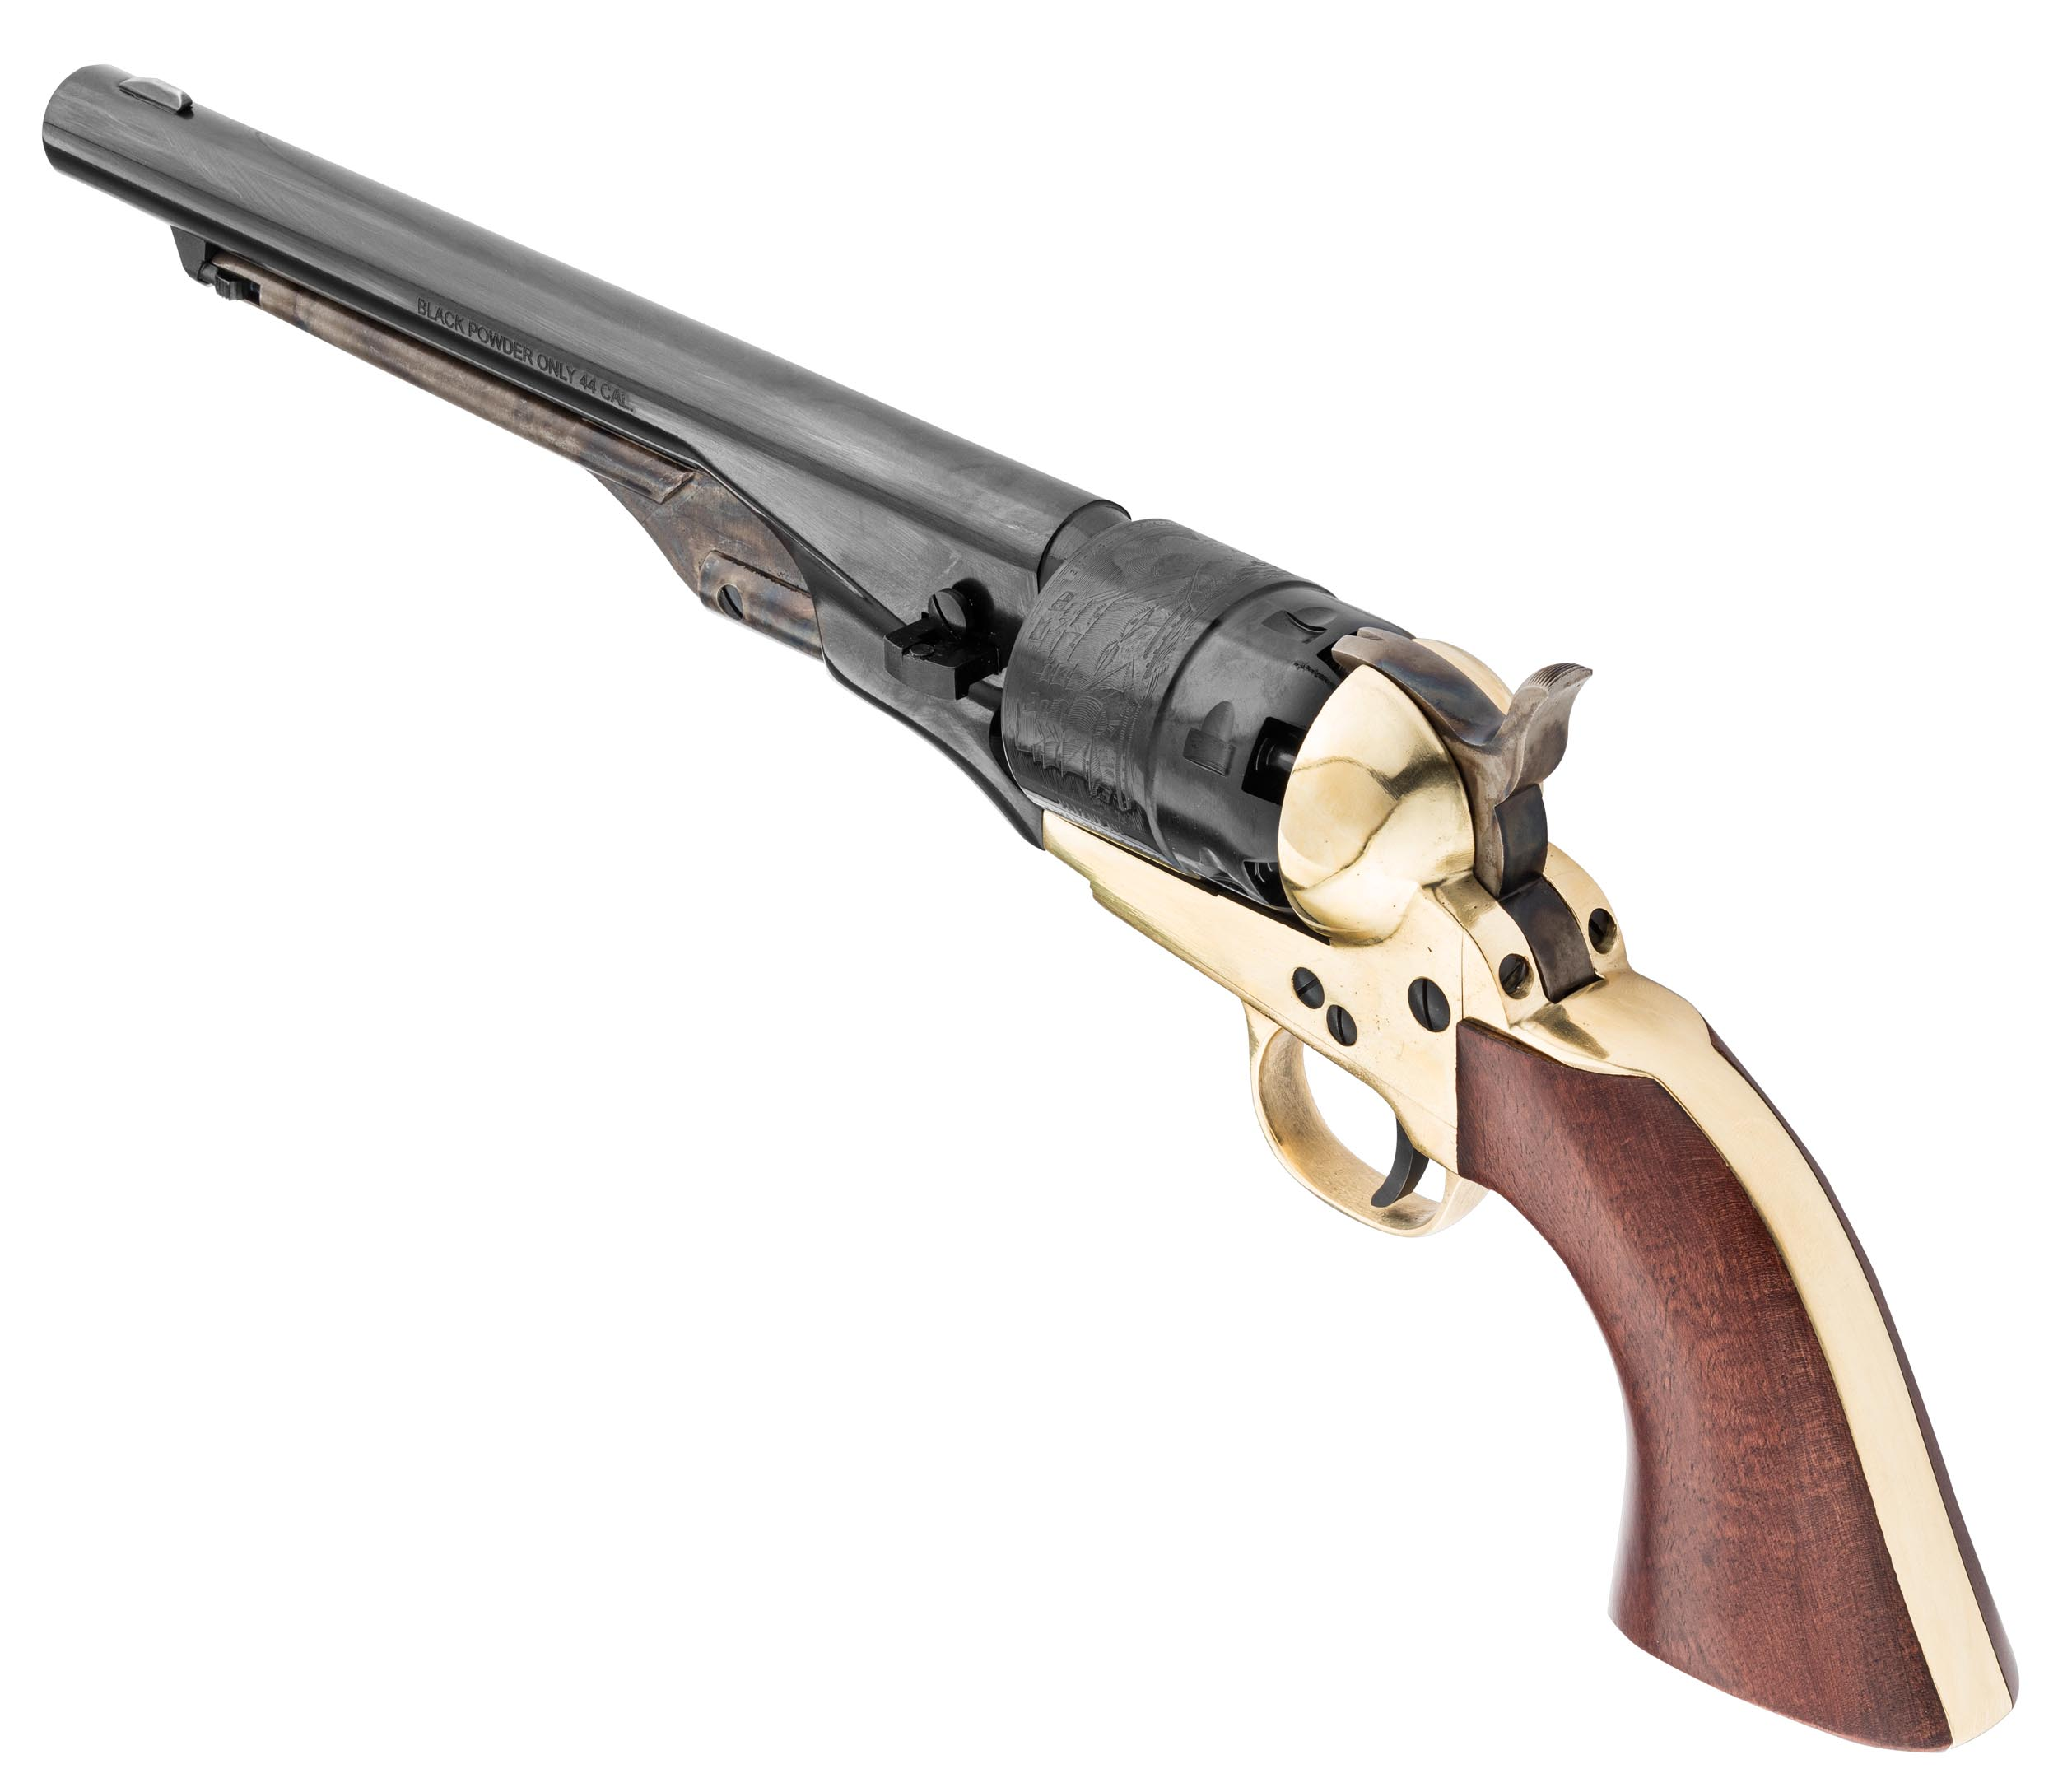 RE464-3 Colt army 1860 Pietta Army laiton - RE464